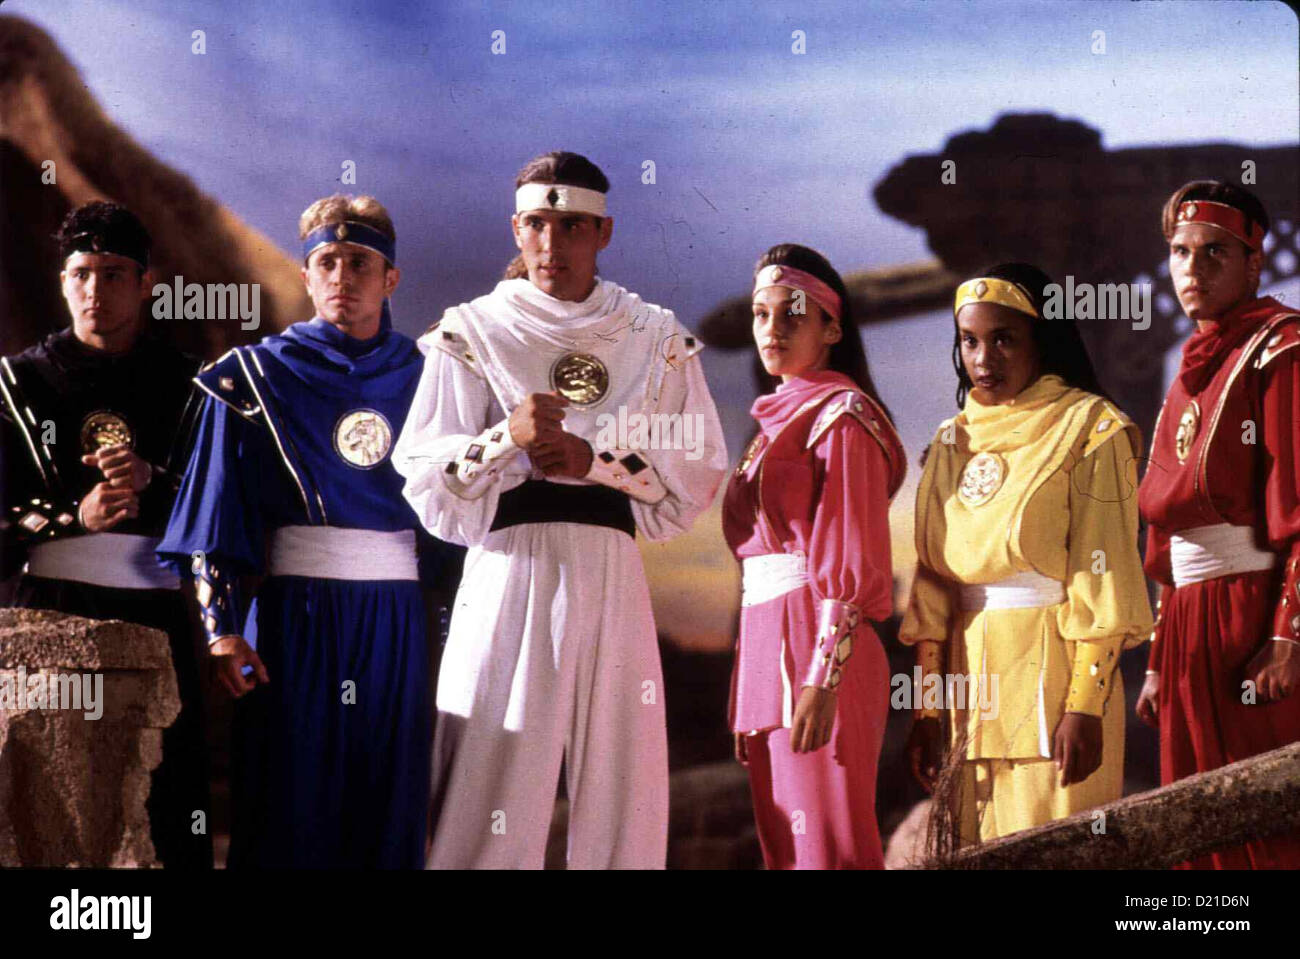 Power Rangers - Der Film  Mighty Morphin Power Rangers - Movie  Johnny Yong Bosch, David Yost, Jason David Frank, Stock Photo